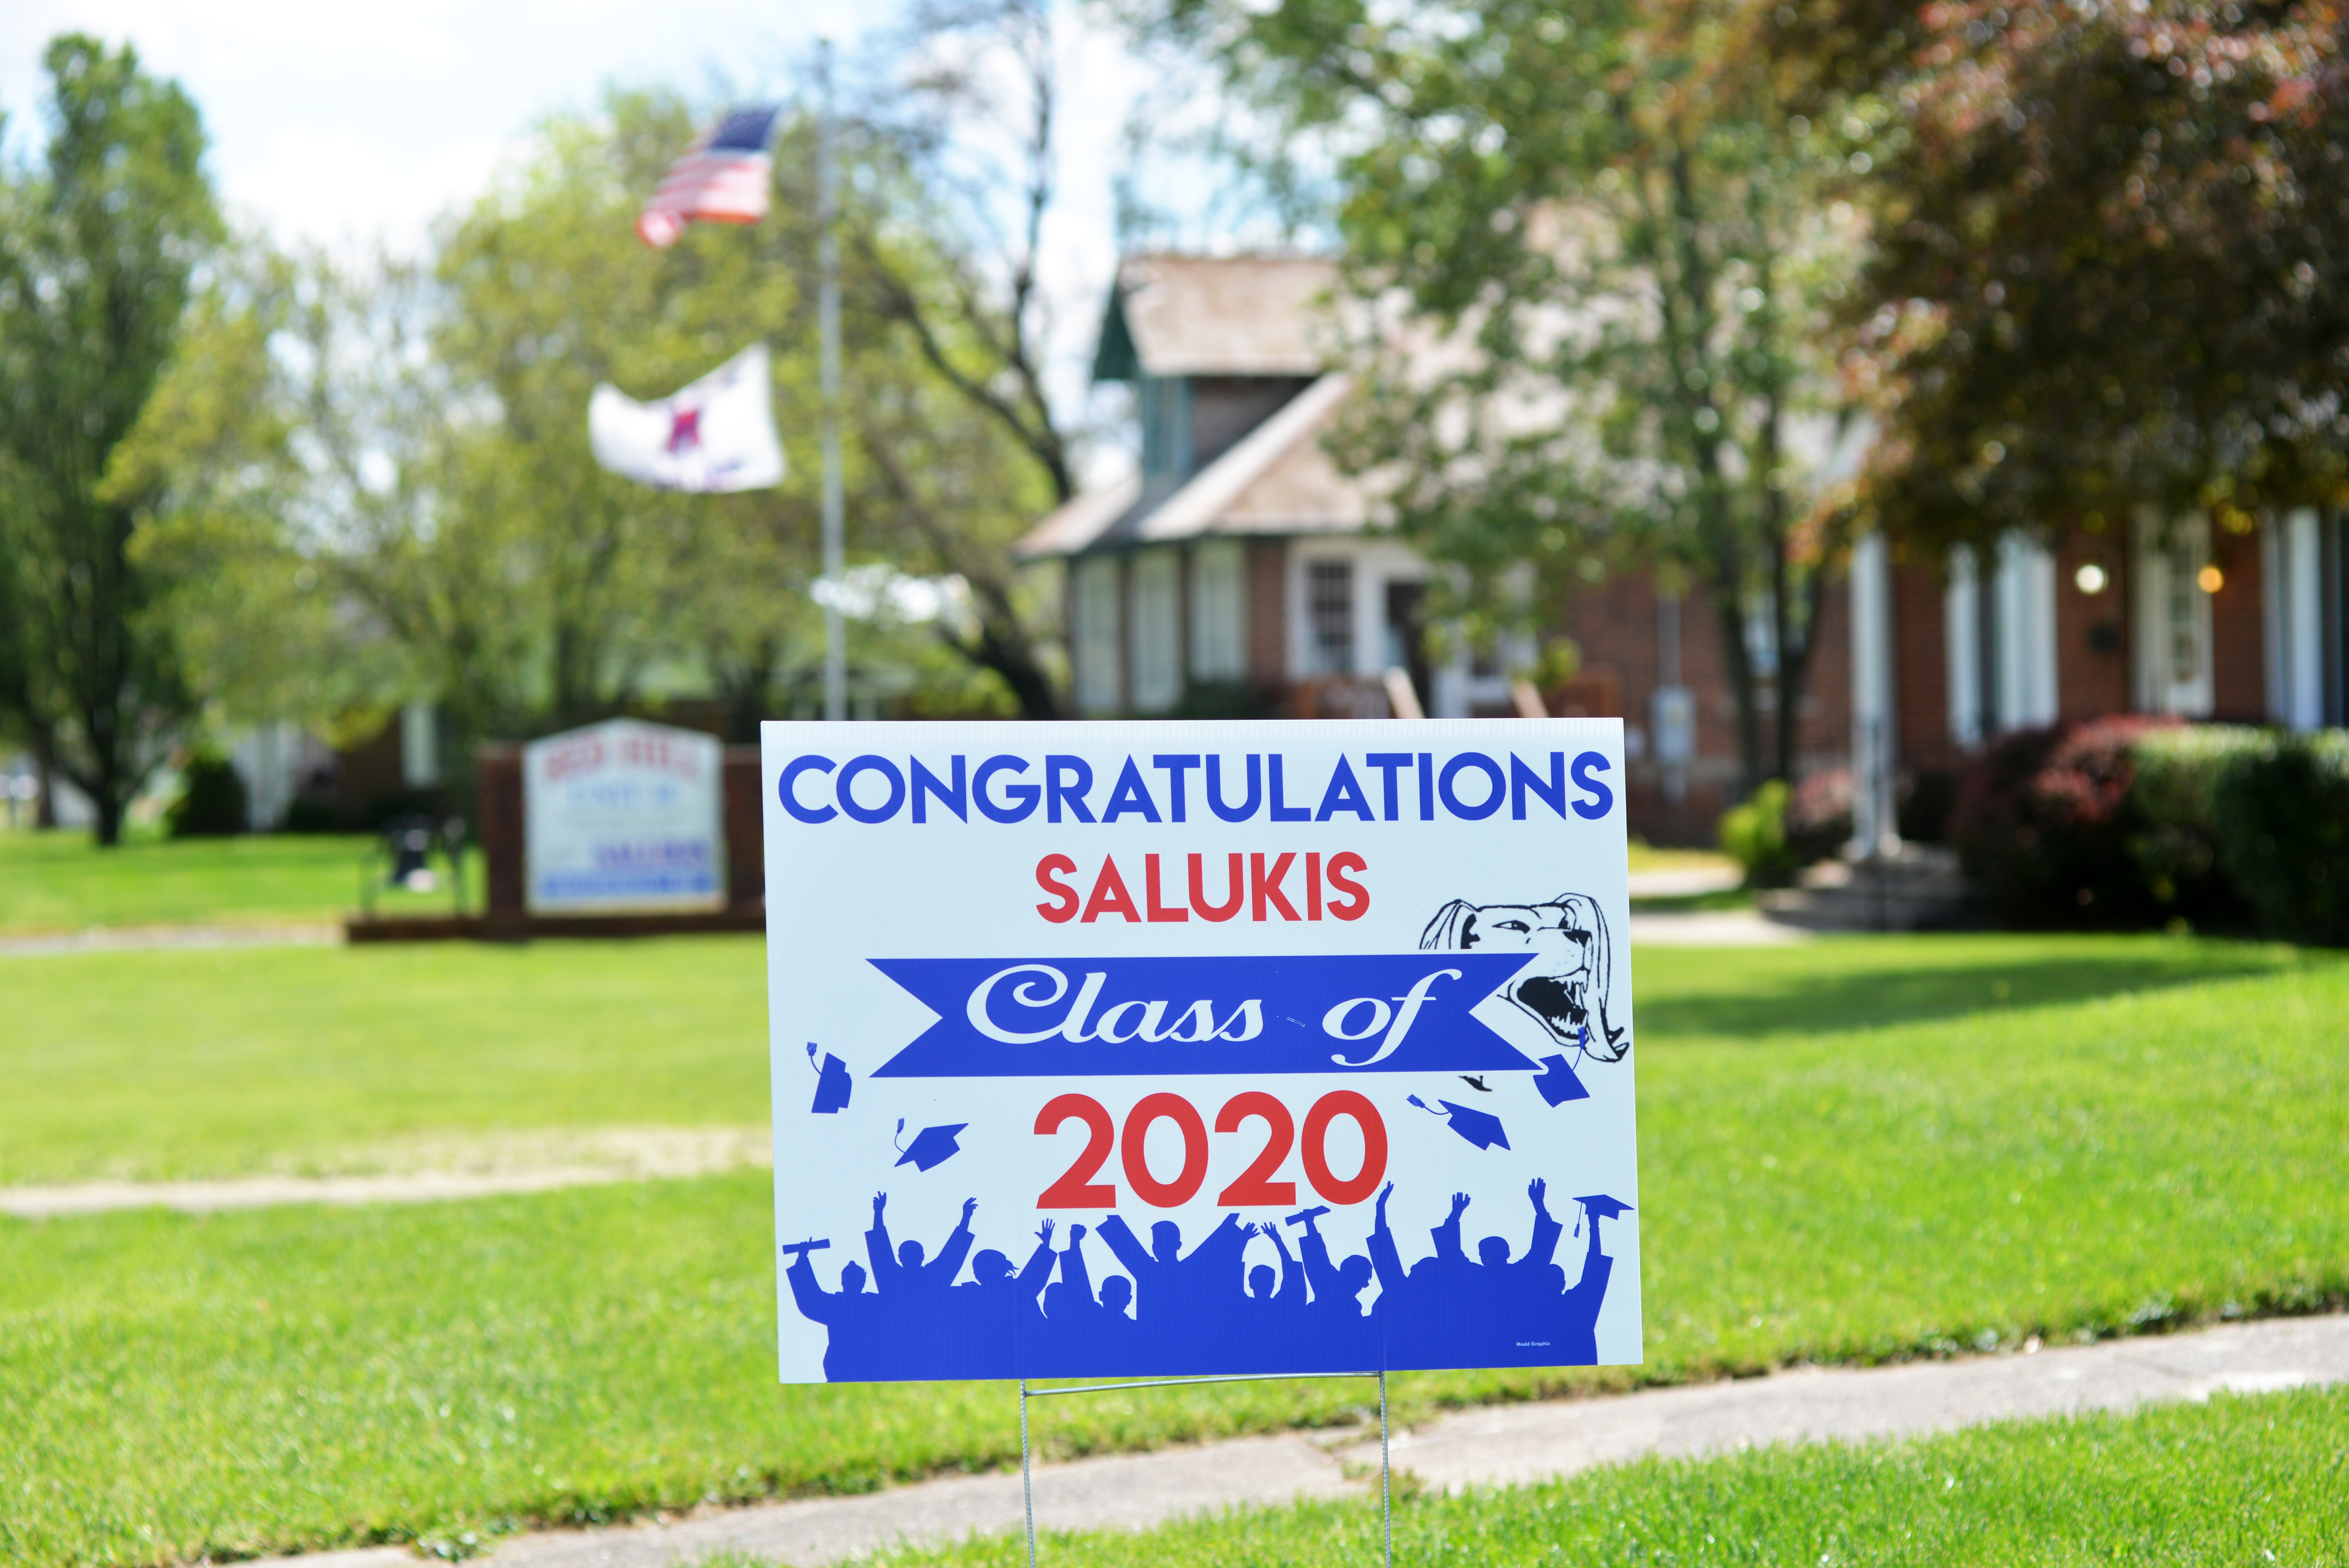 Class of 2020 Graduate sign